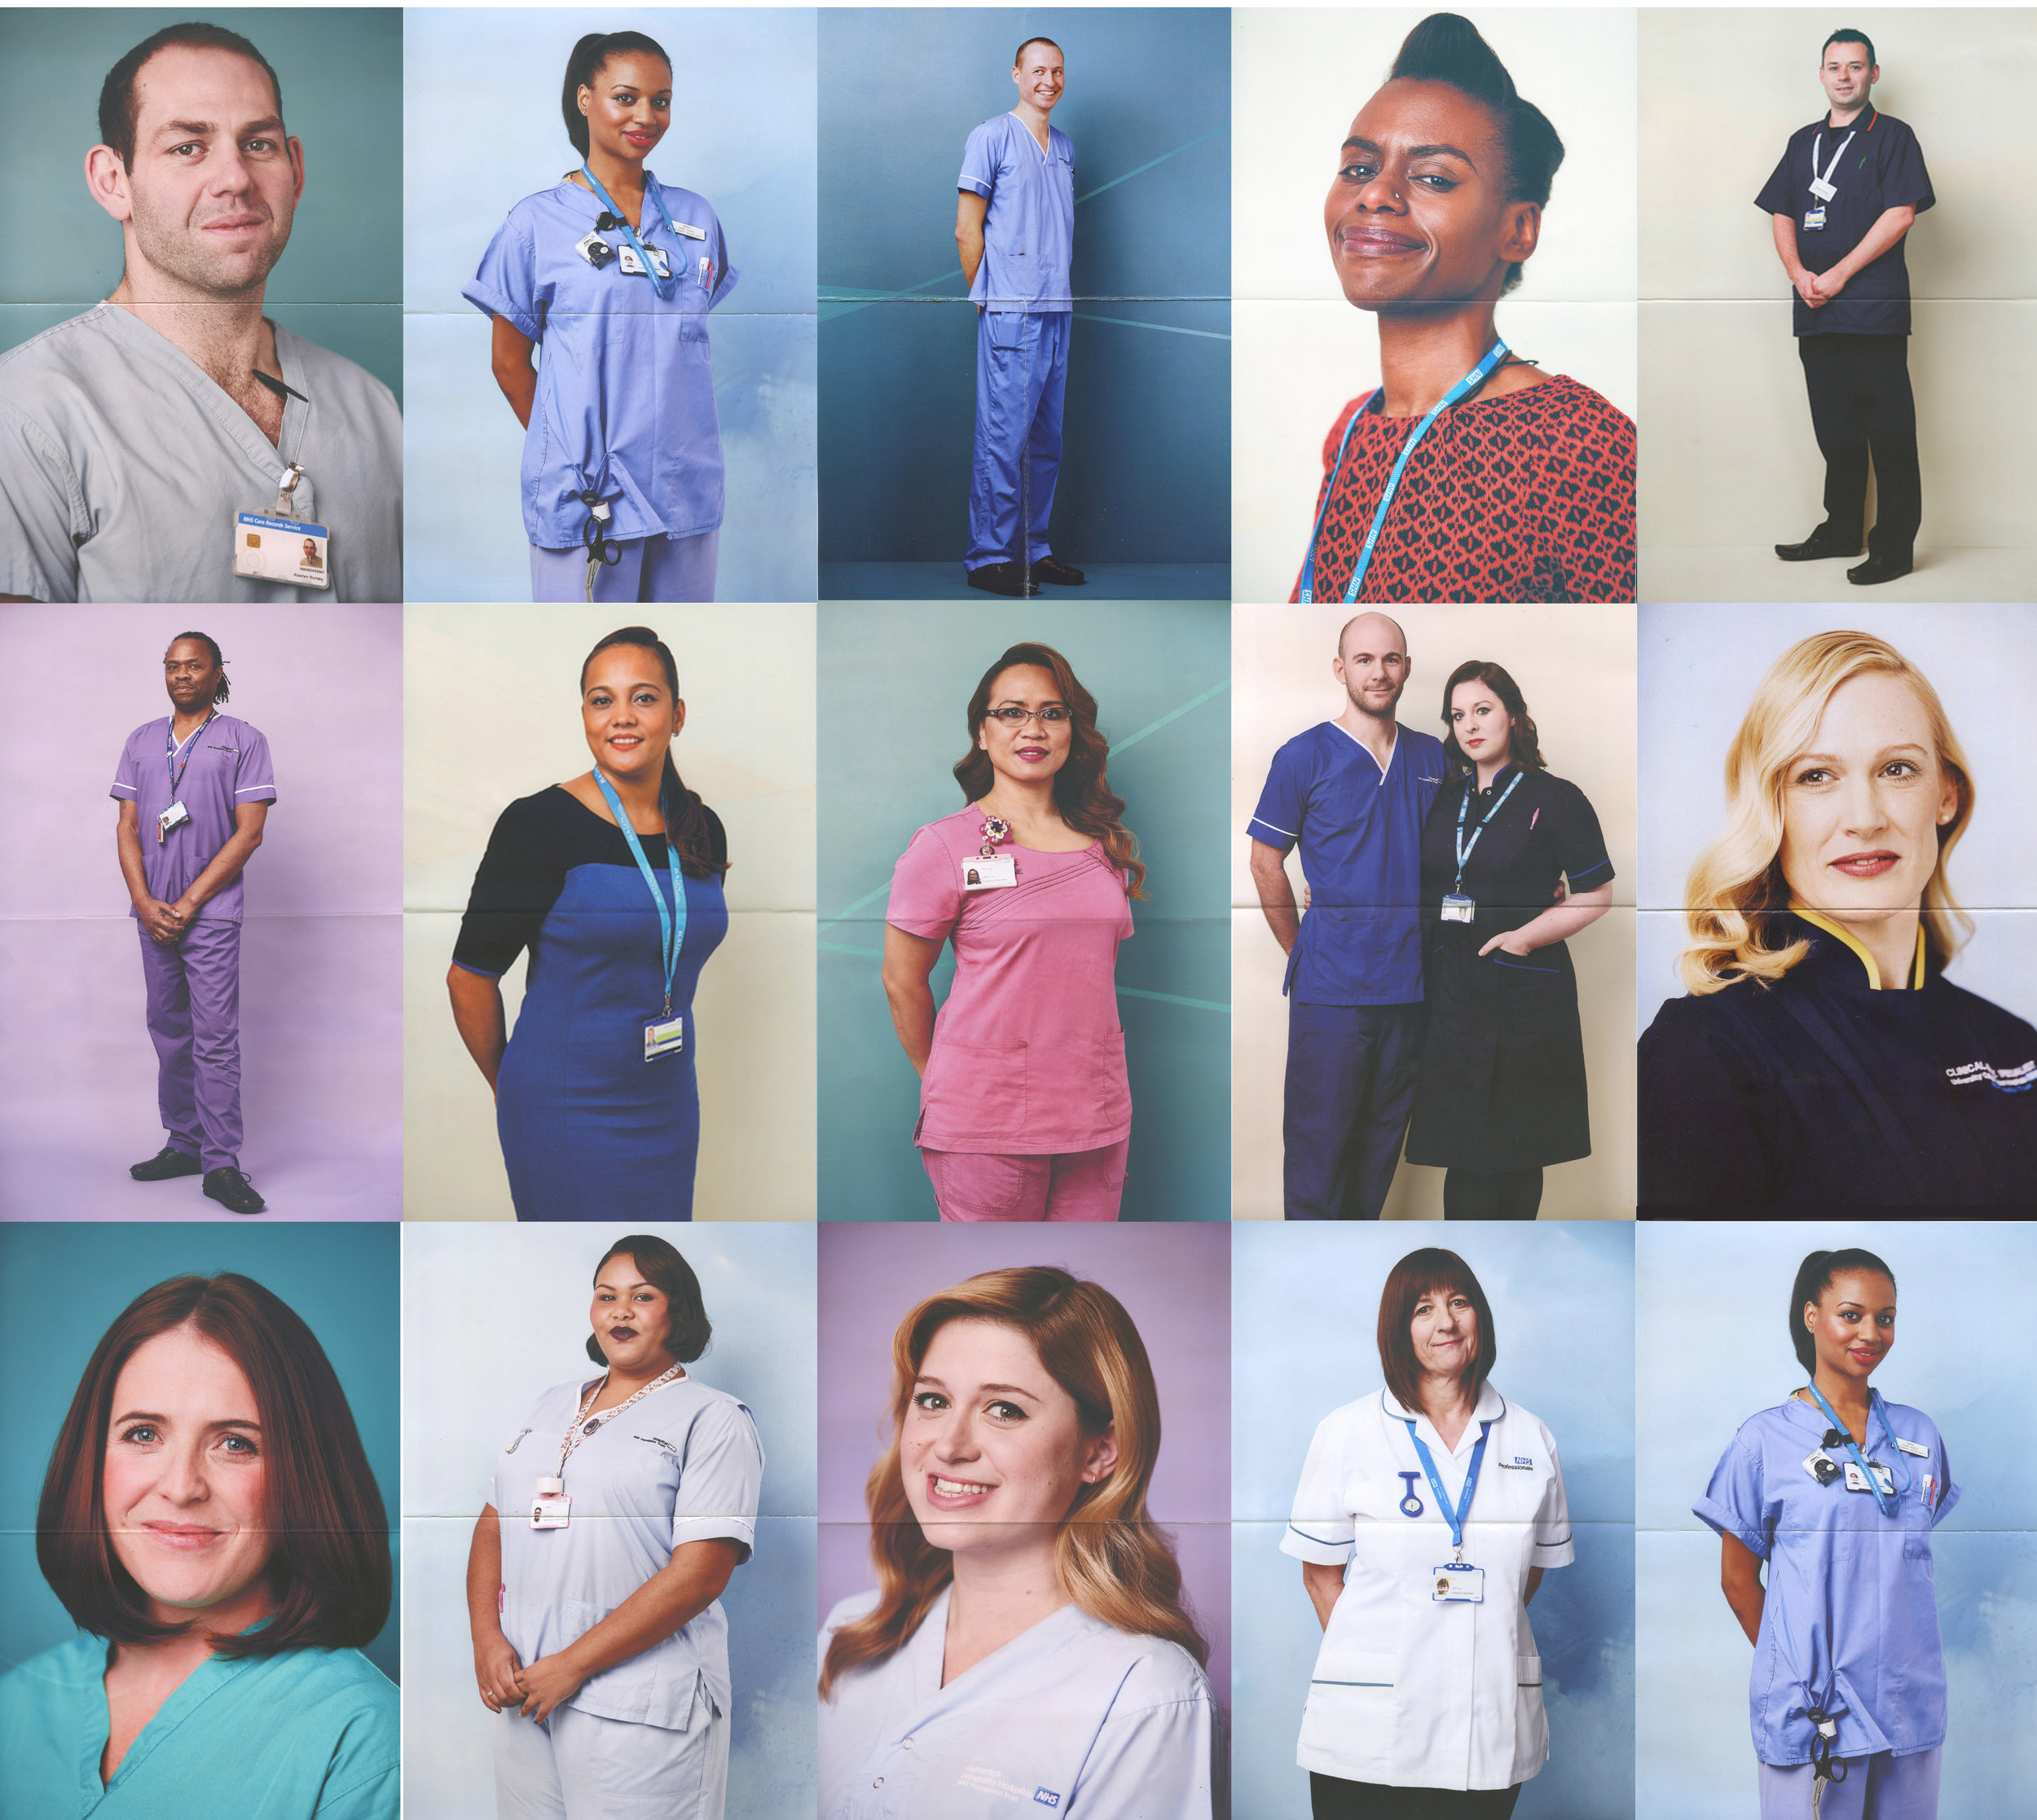 ONE NICE THING: THE MANY FACES OF NURSING   'One Nice Thing' was the brief given to the nurses who took part in this project when asked to tell a story connected to their profession. Photographer  Julia Kennedy  captures a selection of these different stories and the many faces of nursing in this beautiful series of portraits.